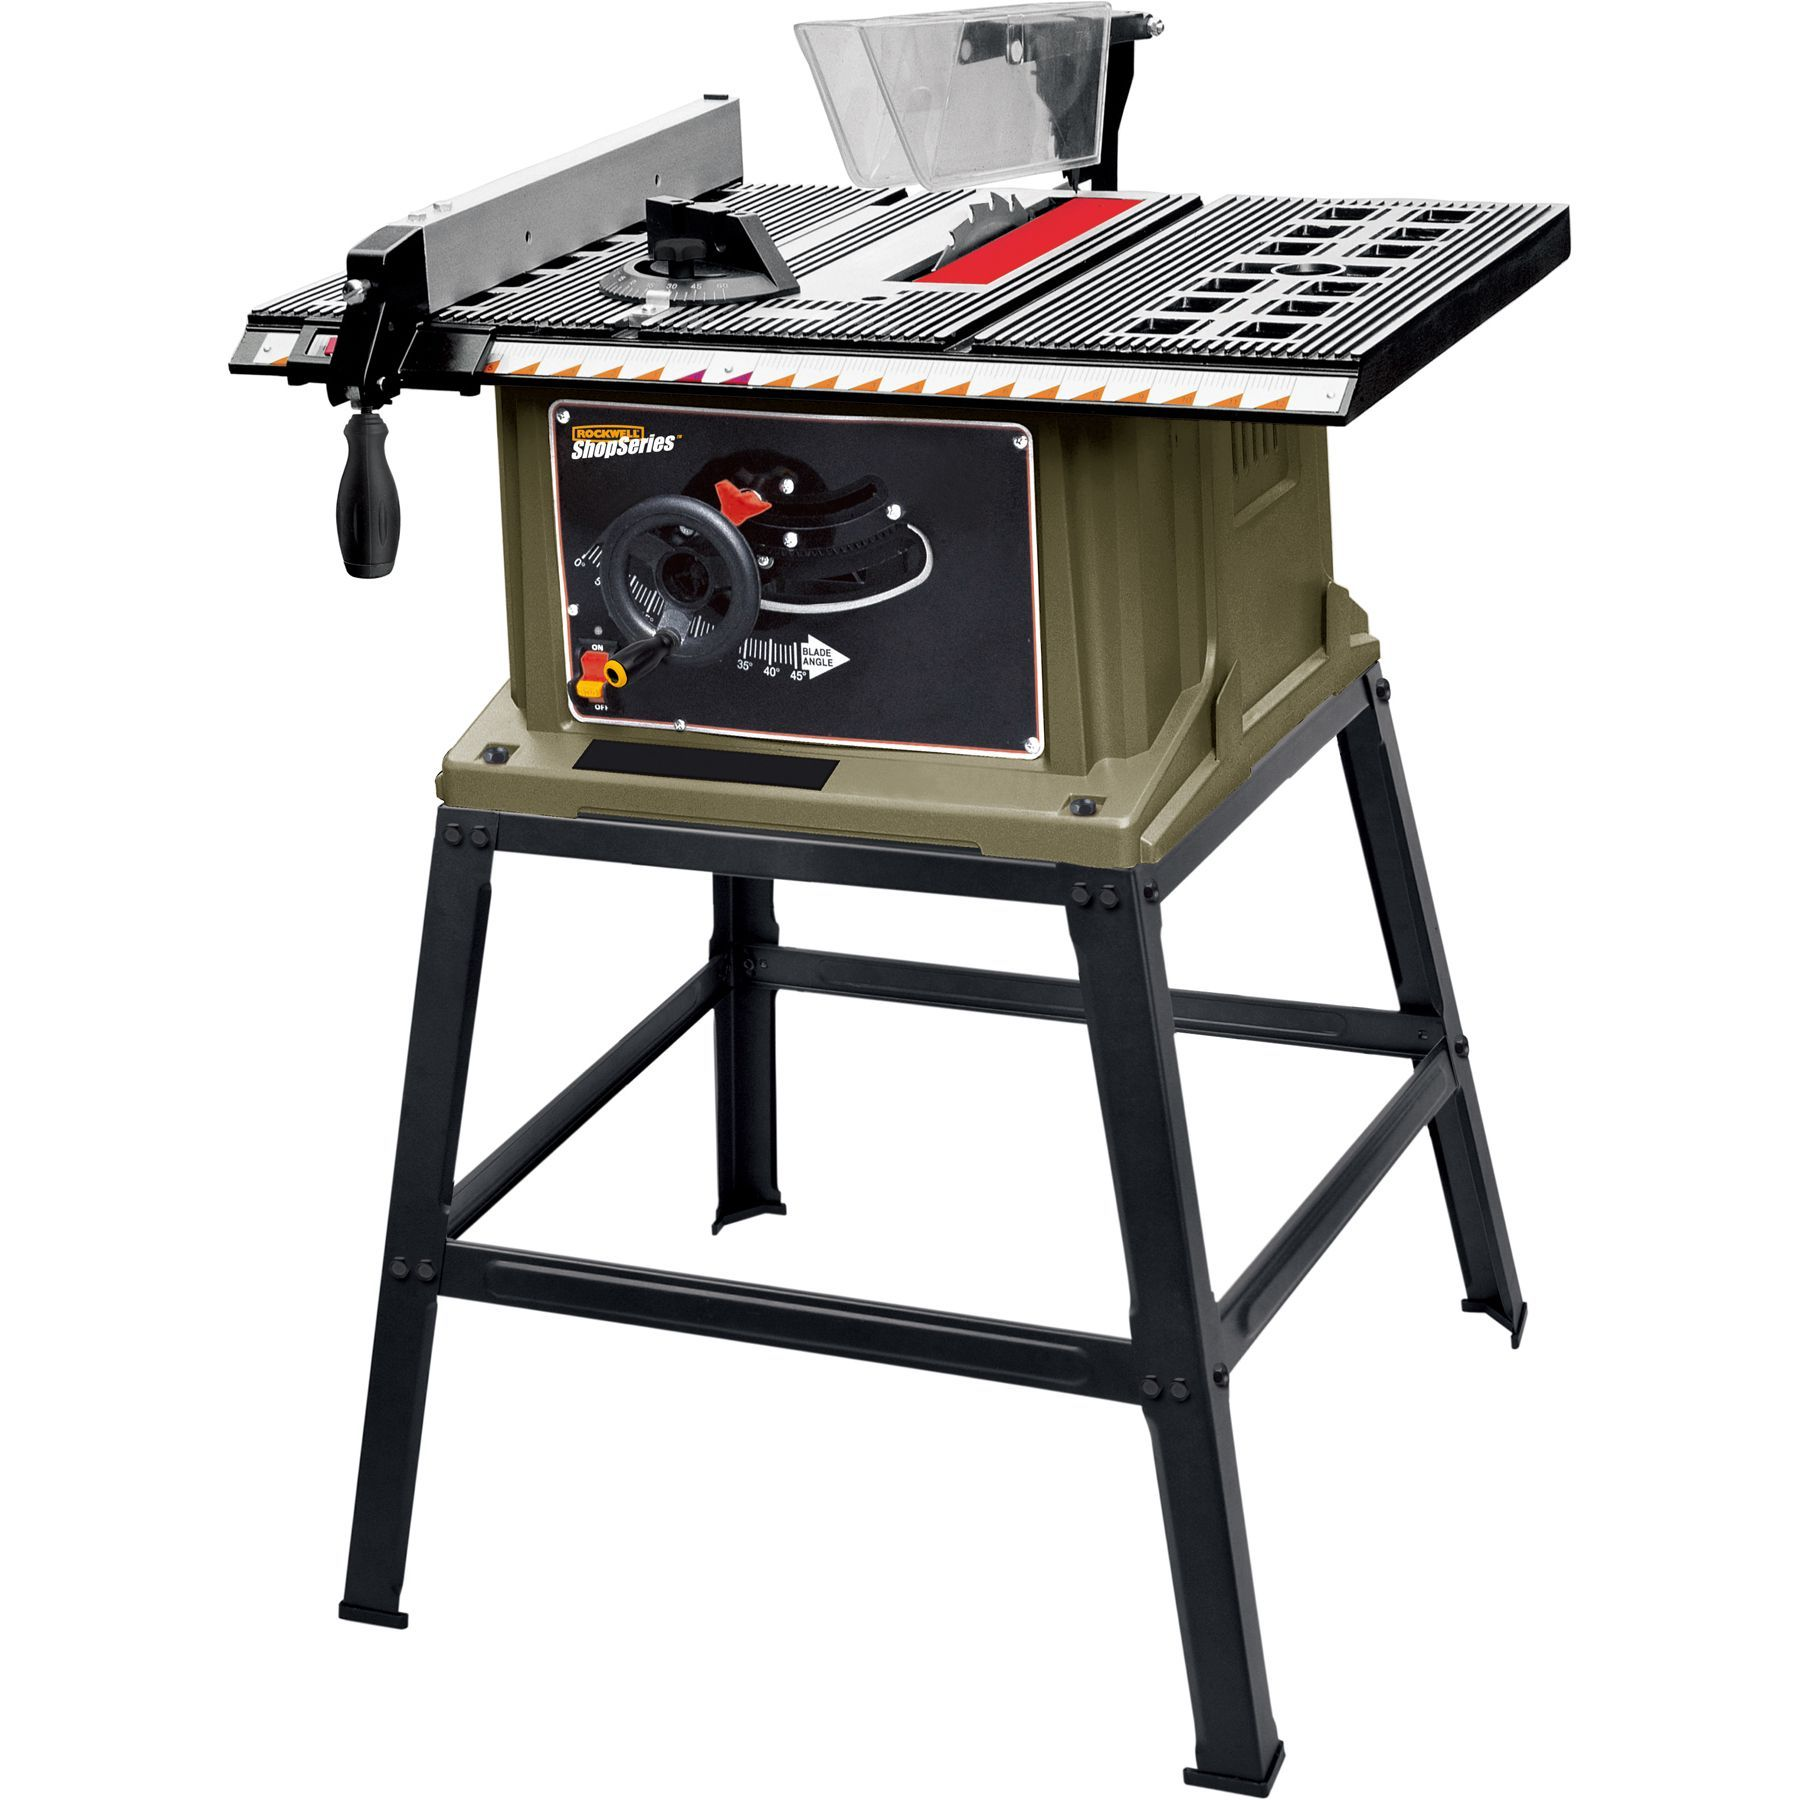 Online Shopping Bedding Furniture Electronics Jewelry Clothing More Best Table Saw Portable Table Saw 10 Inch Table Saw